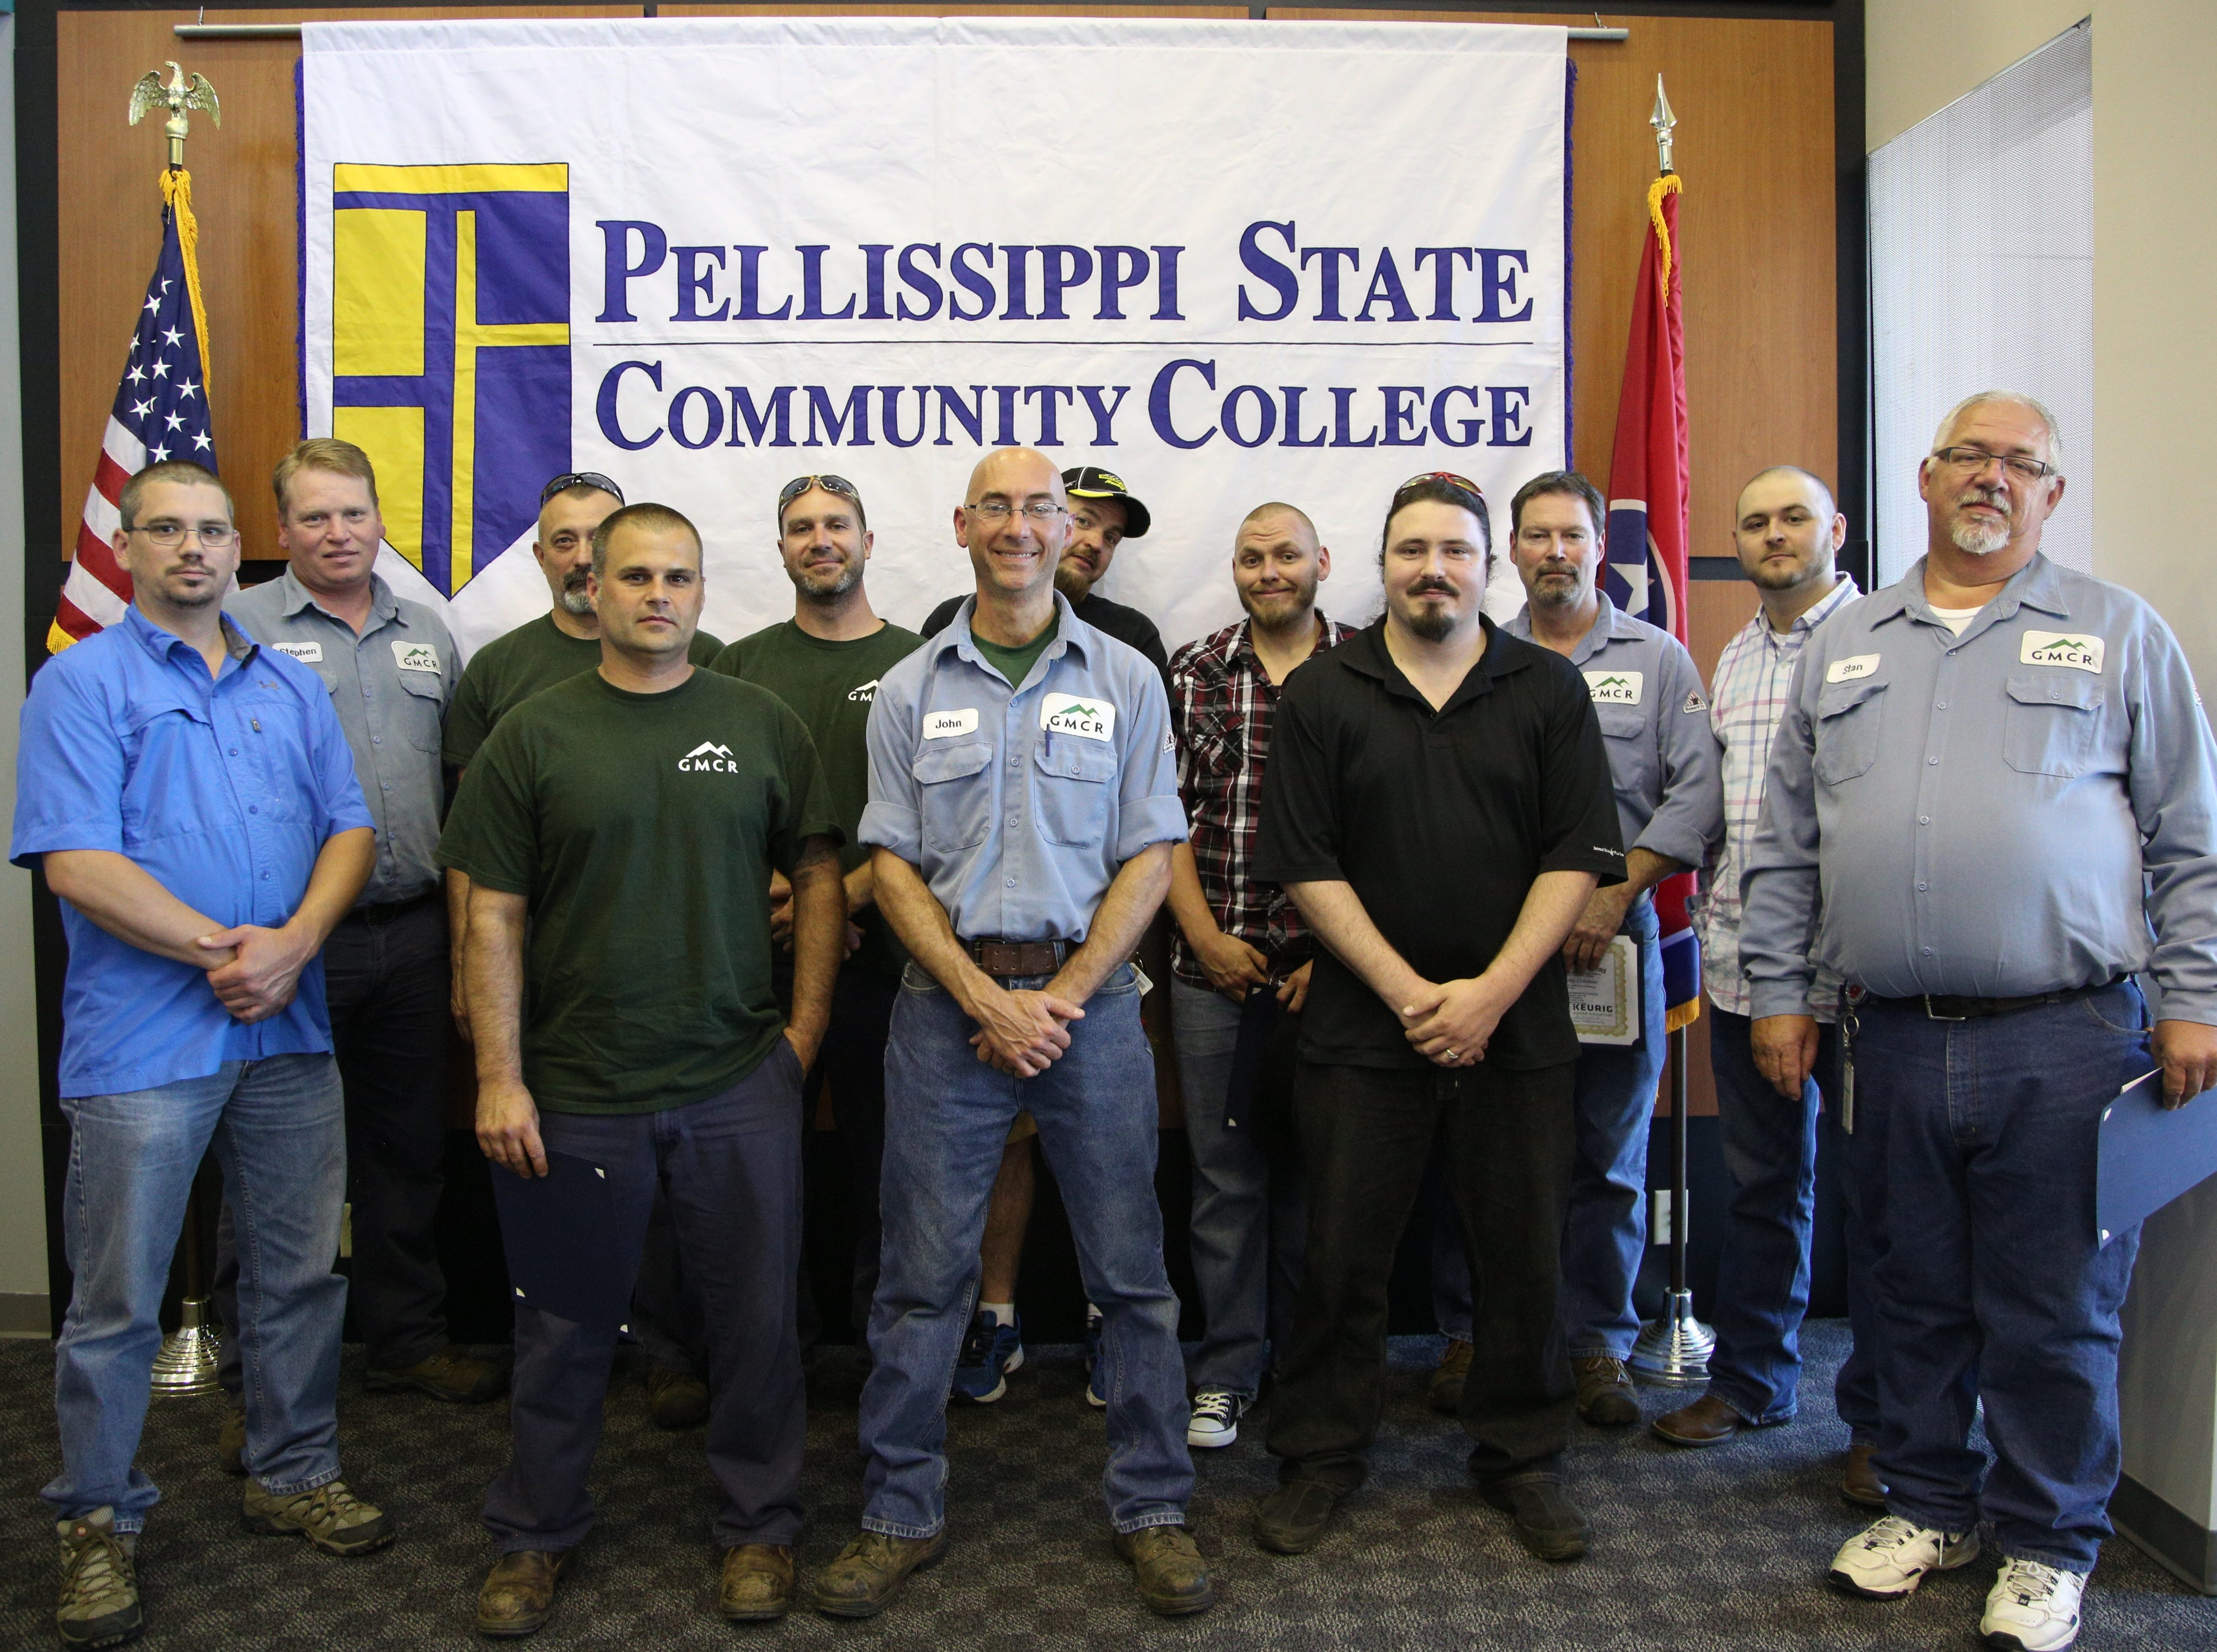 Keurig Green Mountain Inc. employees Kevin Anderson, Marshall Boyd, Stanley Burgin, Robert Coleman, John Fronczak, Damien Kerr, John LaForge, Tim Mabry, Daniel North, Teddy Phillips, Rodney Reynolds, Josh Sicotte, Stephen Strader and Jeremiah Williams completed an industry-specific workforce development program at Pellissippi State Community College. The short-term certificate program was designed to train Keurig Green Mountain Inc. employees to install, troubleshoot and maintain industrial electrical systems. The curriculum was built through partnerships between Pellissippi State's Engineering and Media Technologies department and Business and Community Services division with Keurig Green Mountain's continuous learning department.